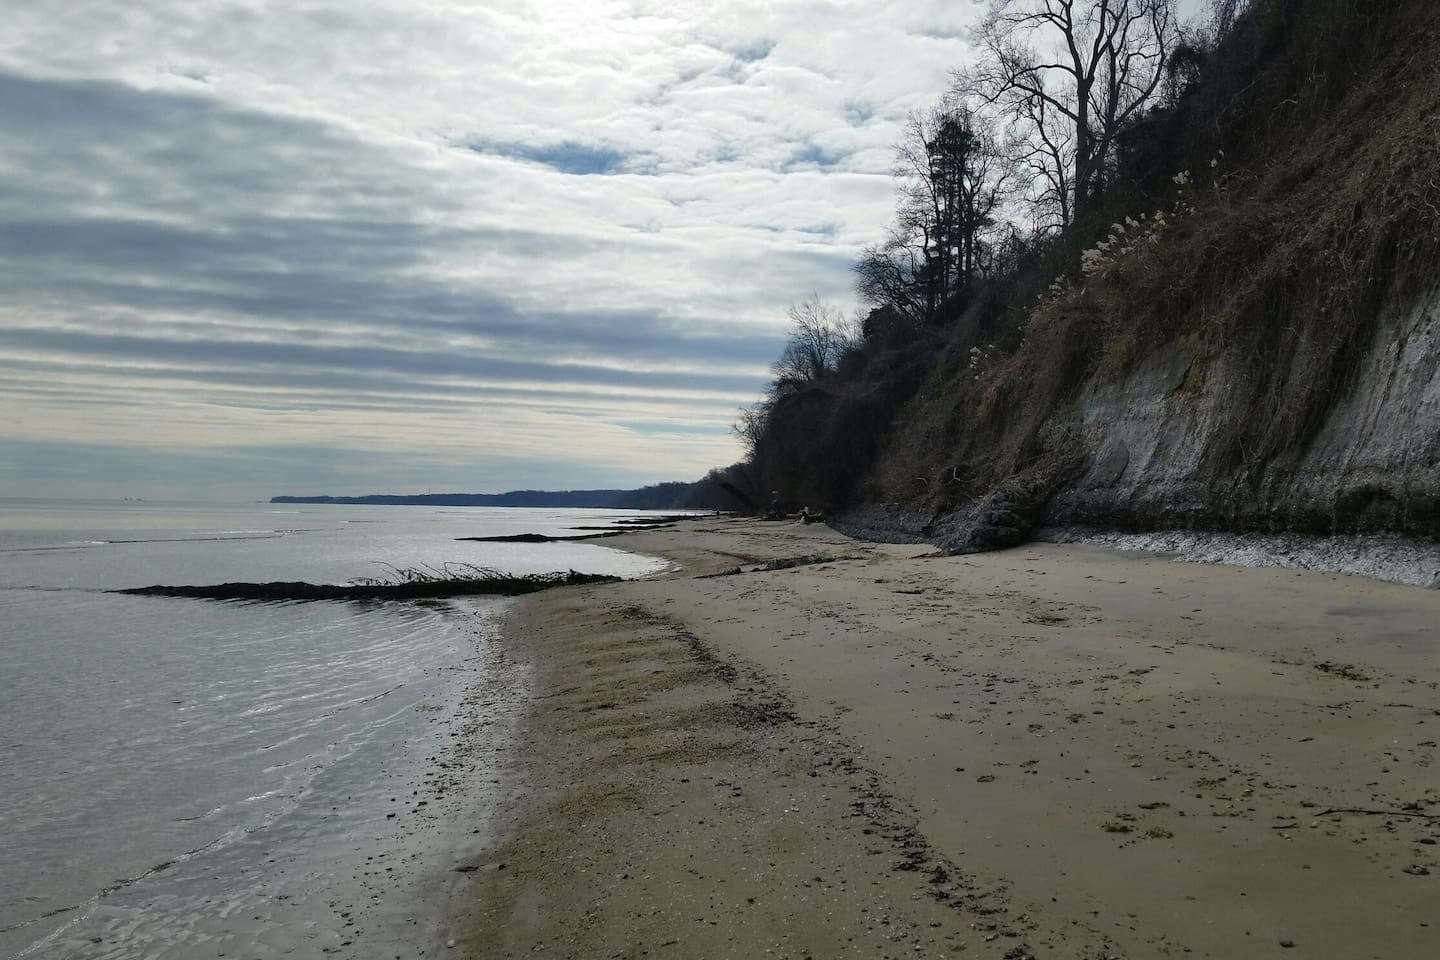 Your beach walk extends for miles of fossils